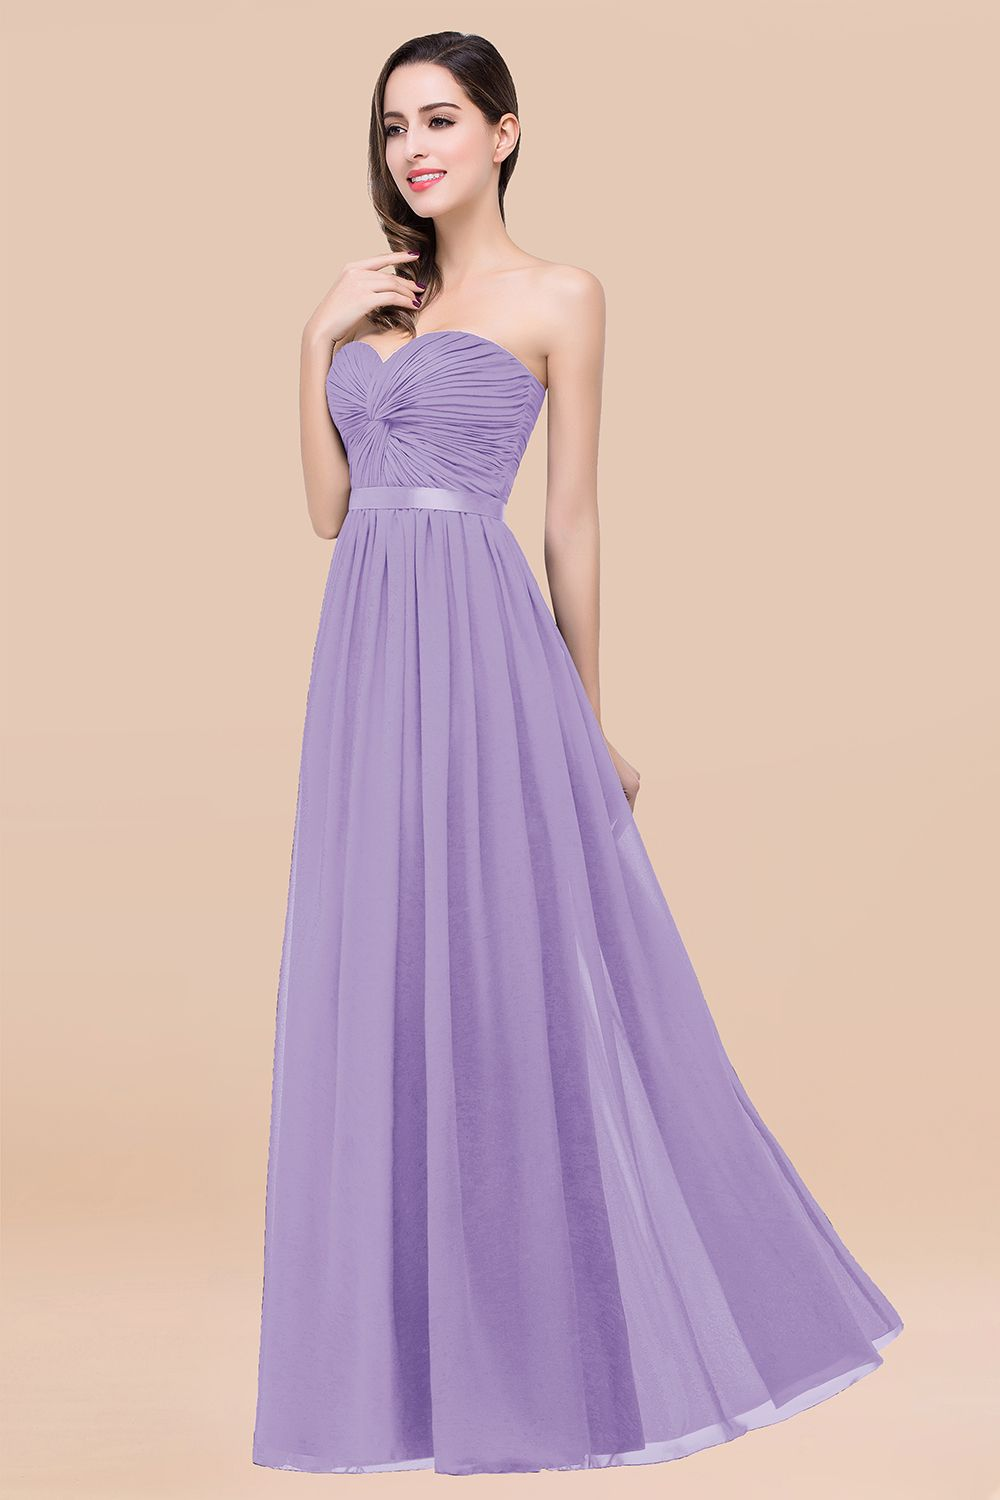 BMbridal Affordable Sweetheart Ruffle Navy Chiffon Bridesmaid Dress With Ribbon